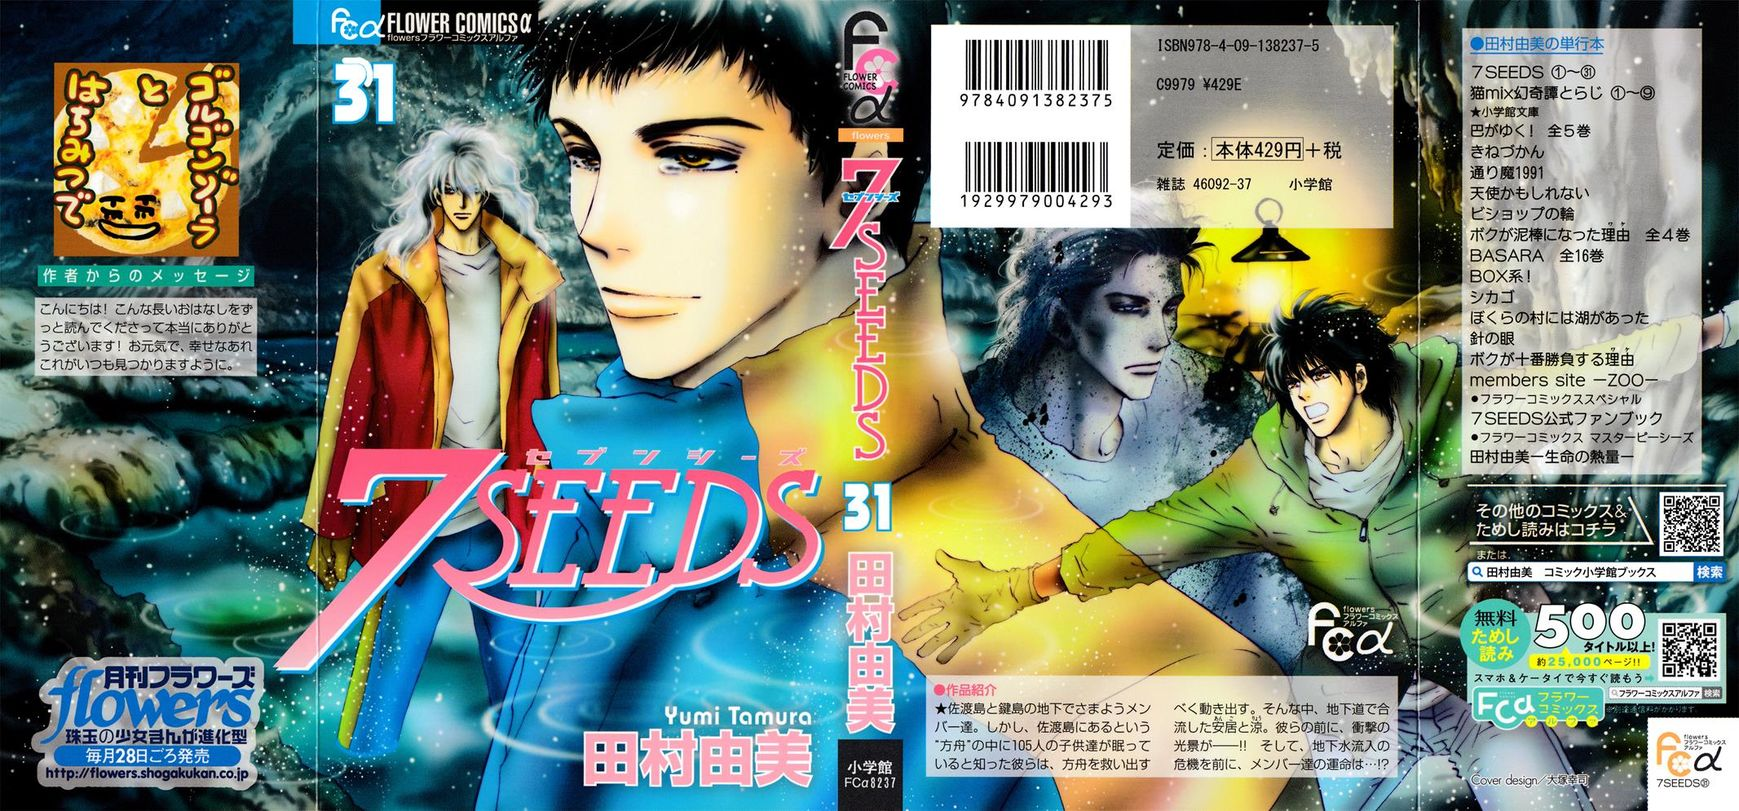 7 Seeds 157 Page 1